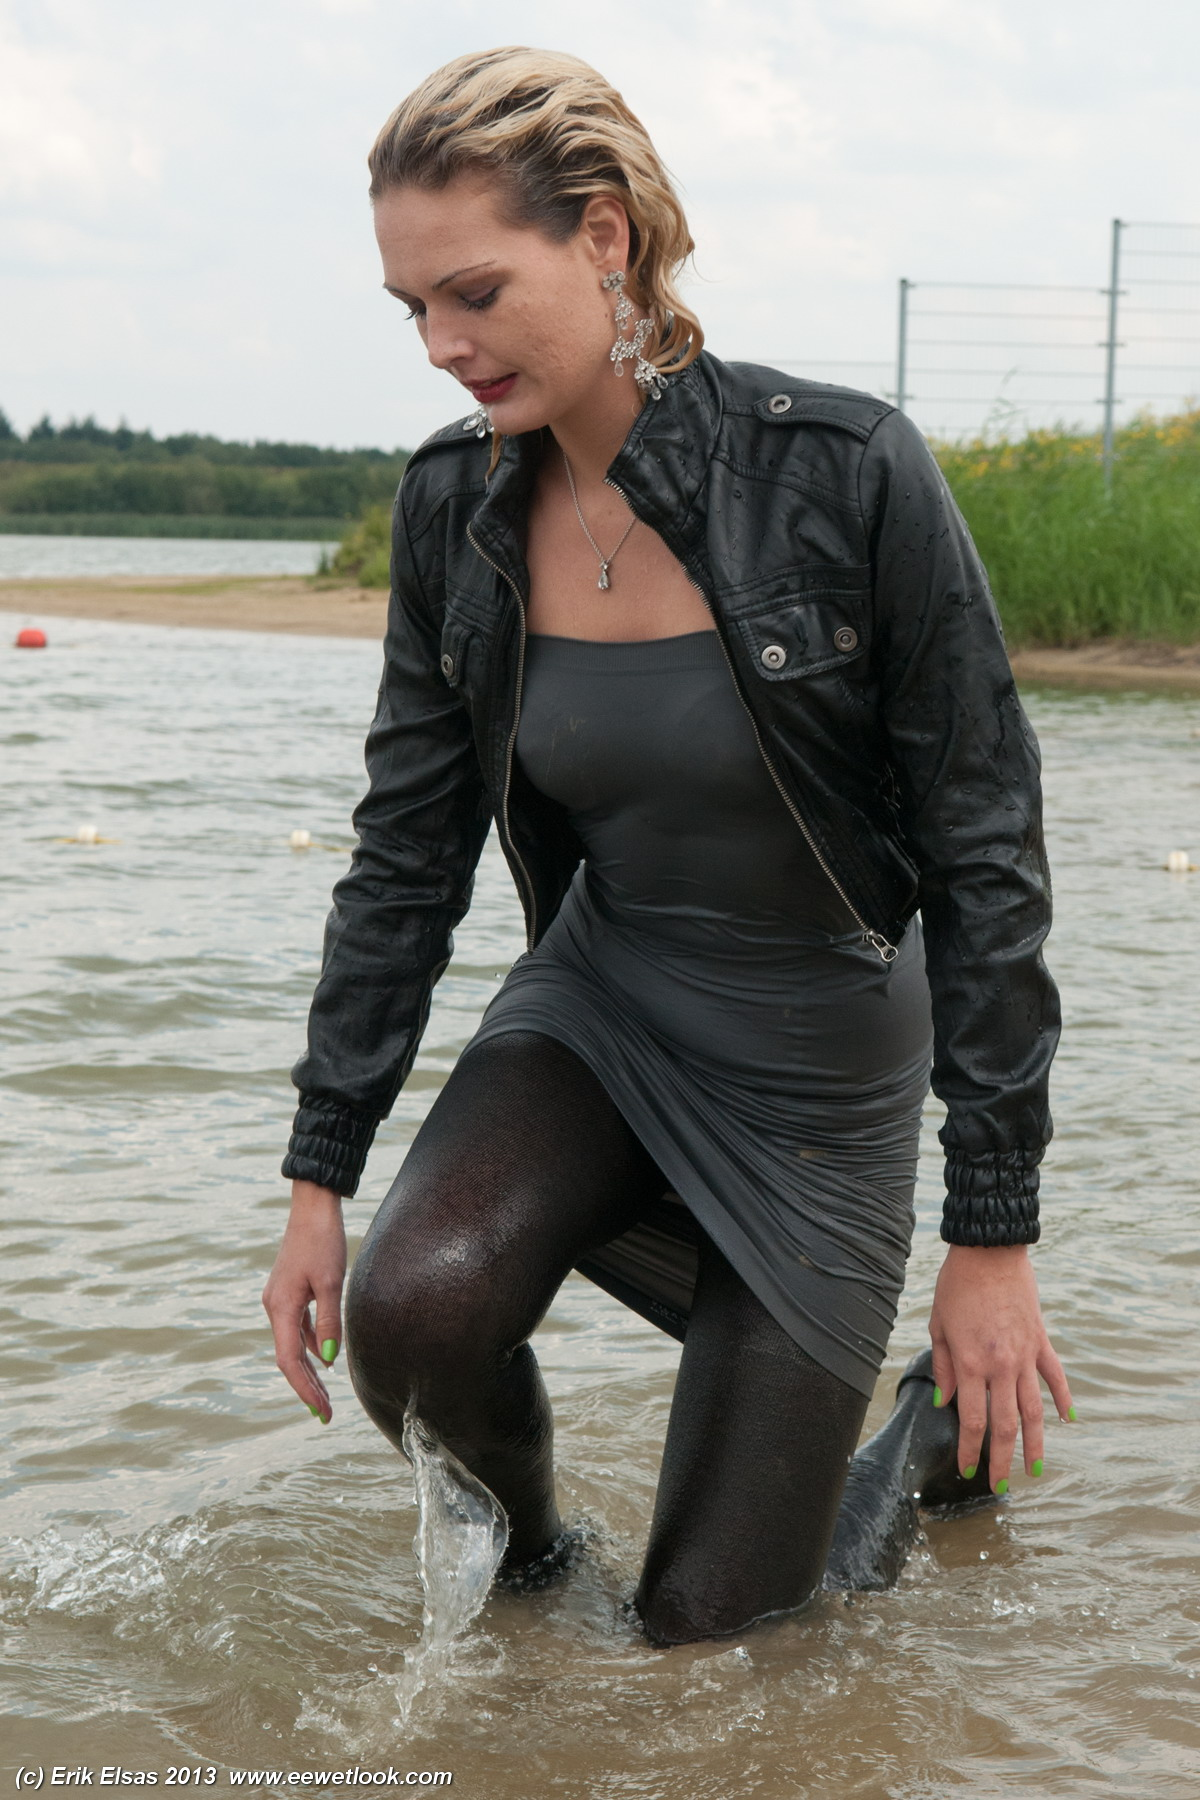 Pissing and wetlook - 3 1